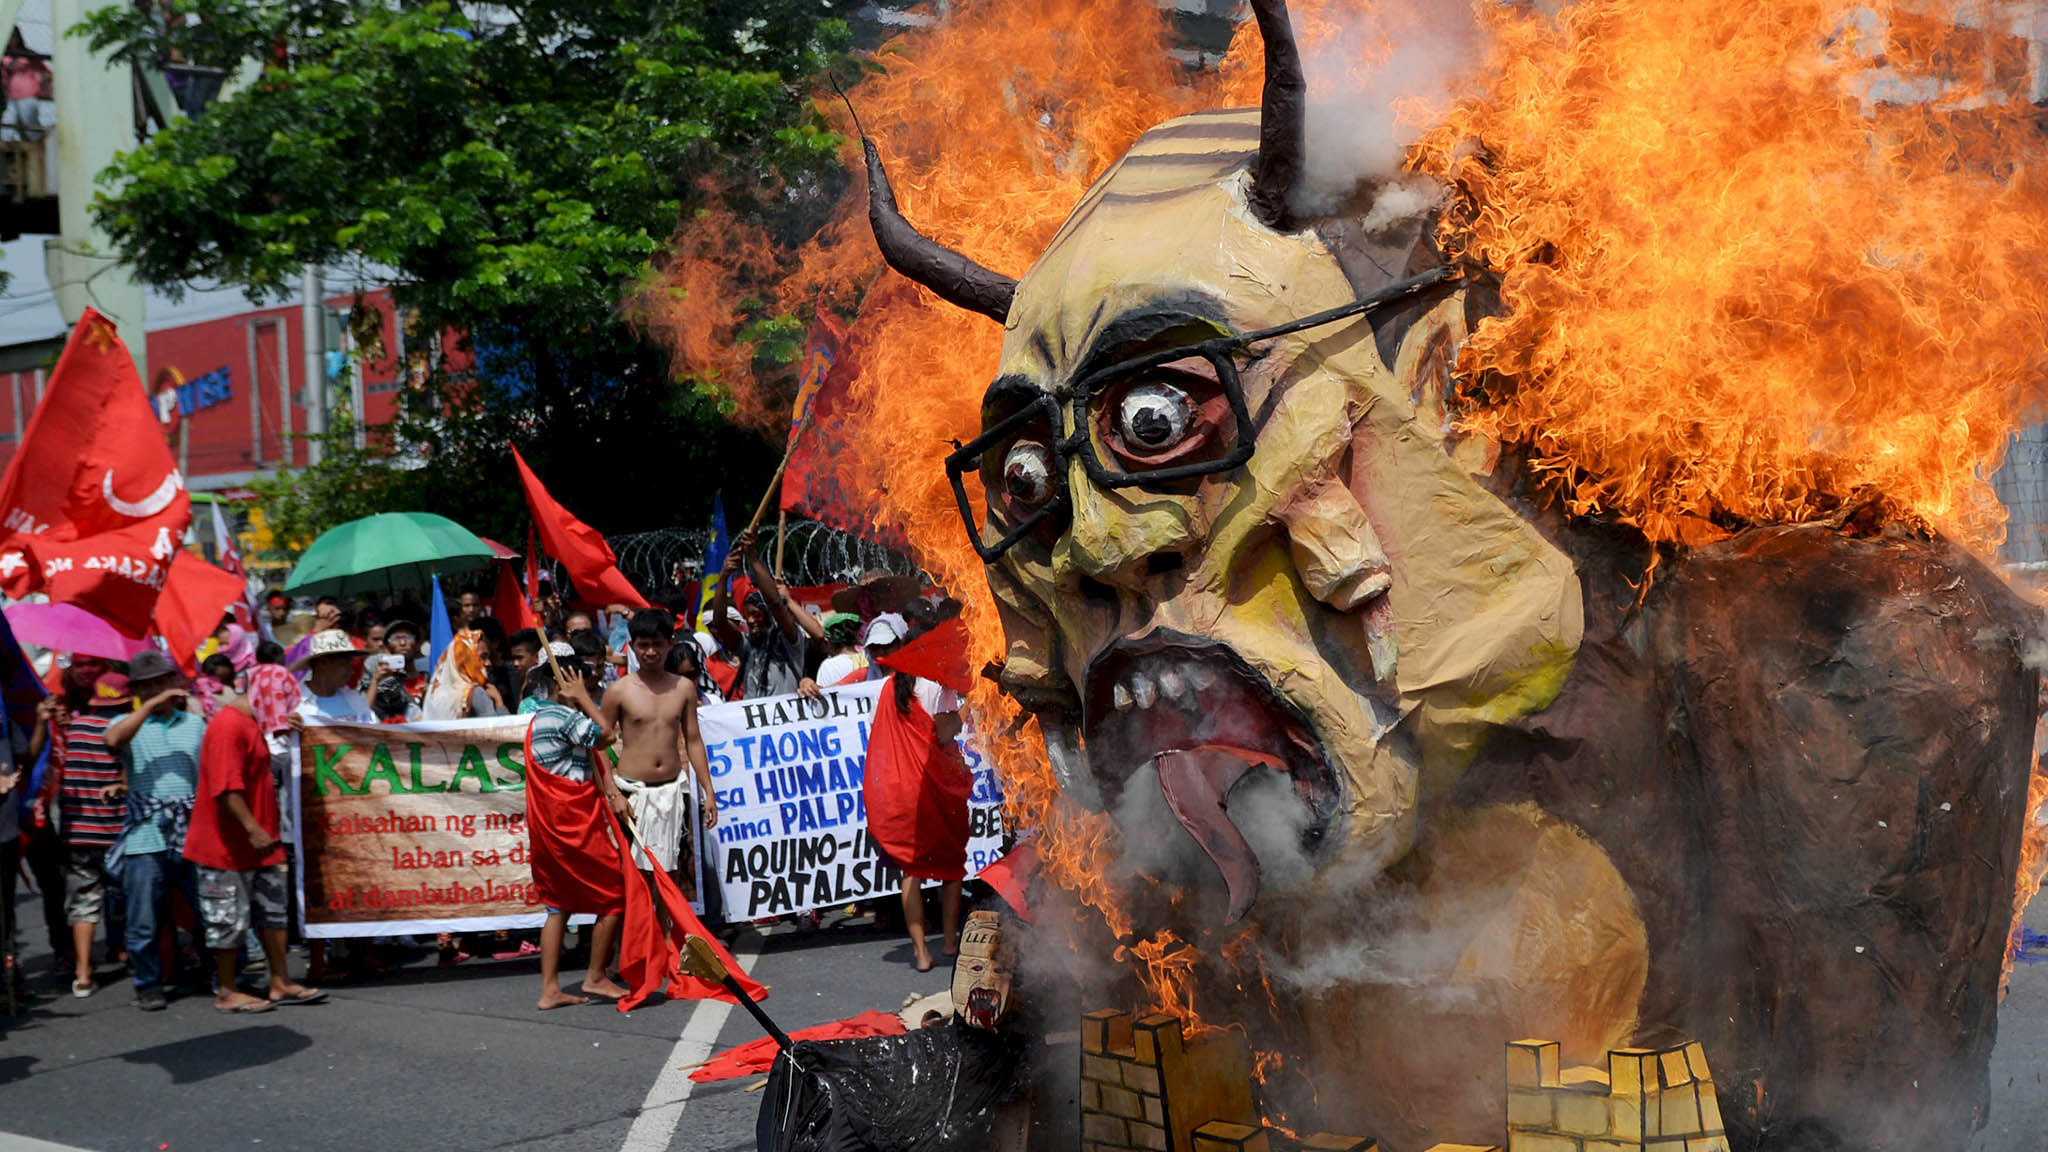 Protesters burn an effigy of President Aquino during a rally near Batasang Pambansa in Quezon city